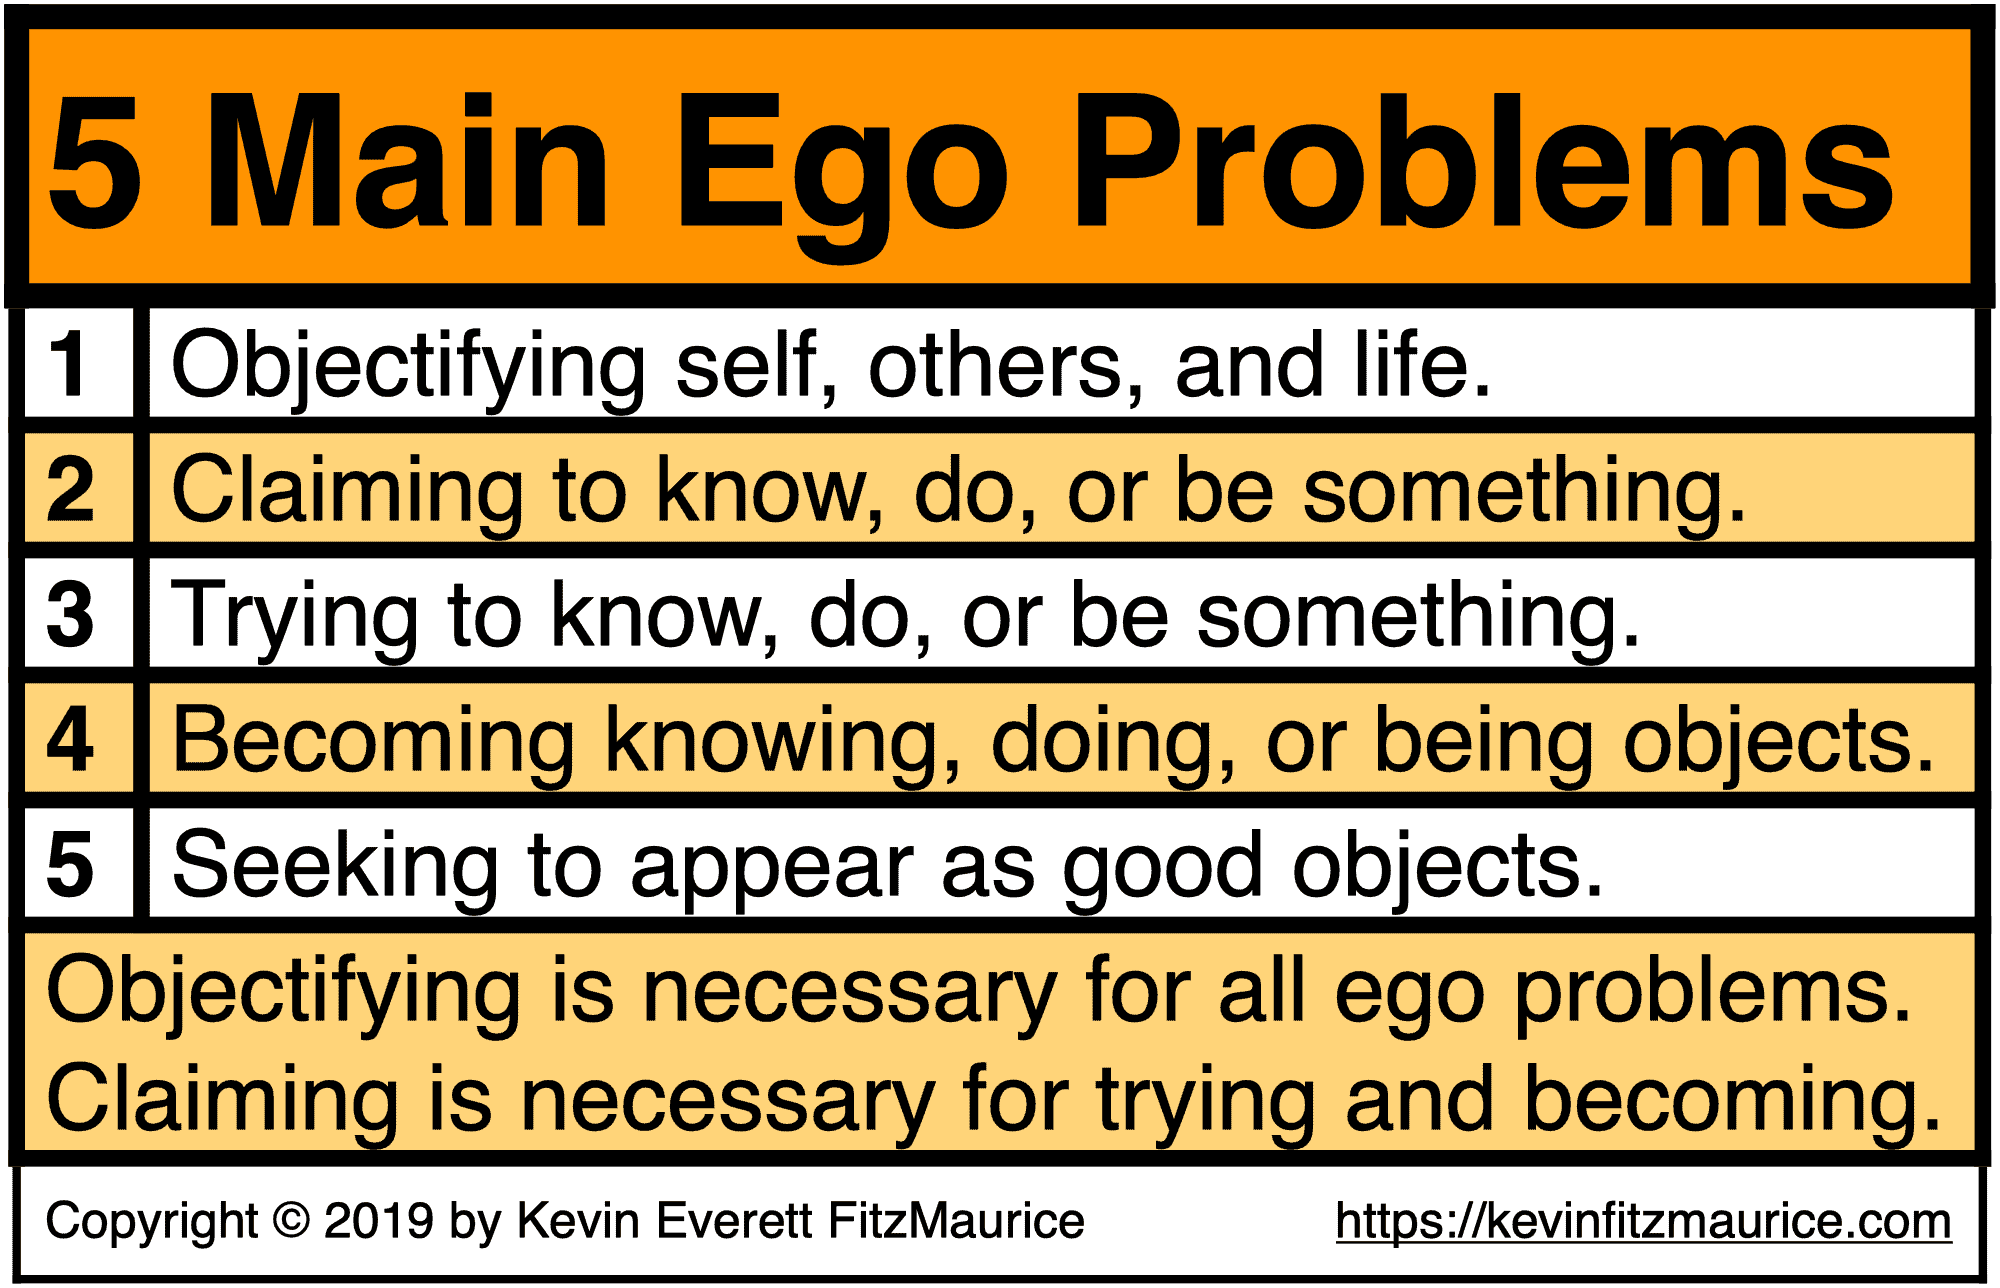 5 Main Ego Problems to Work On